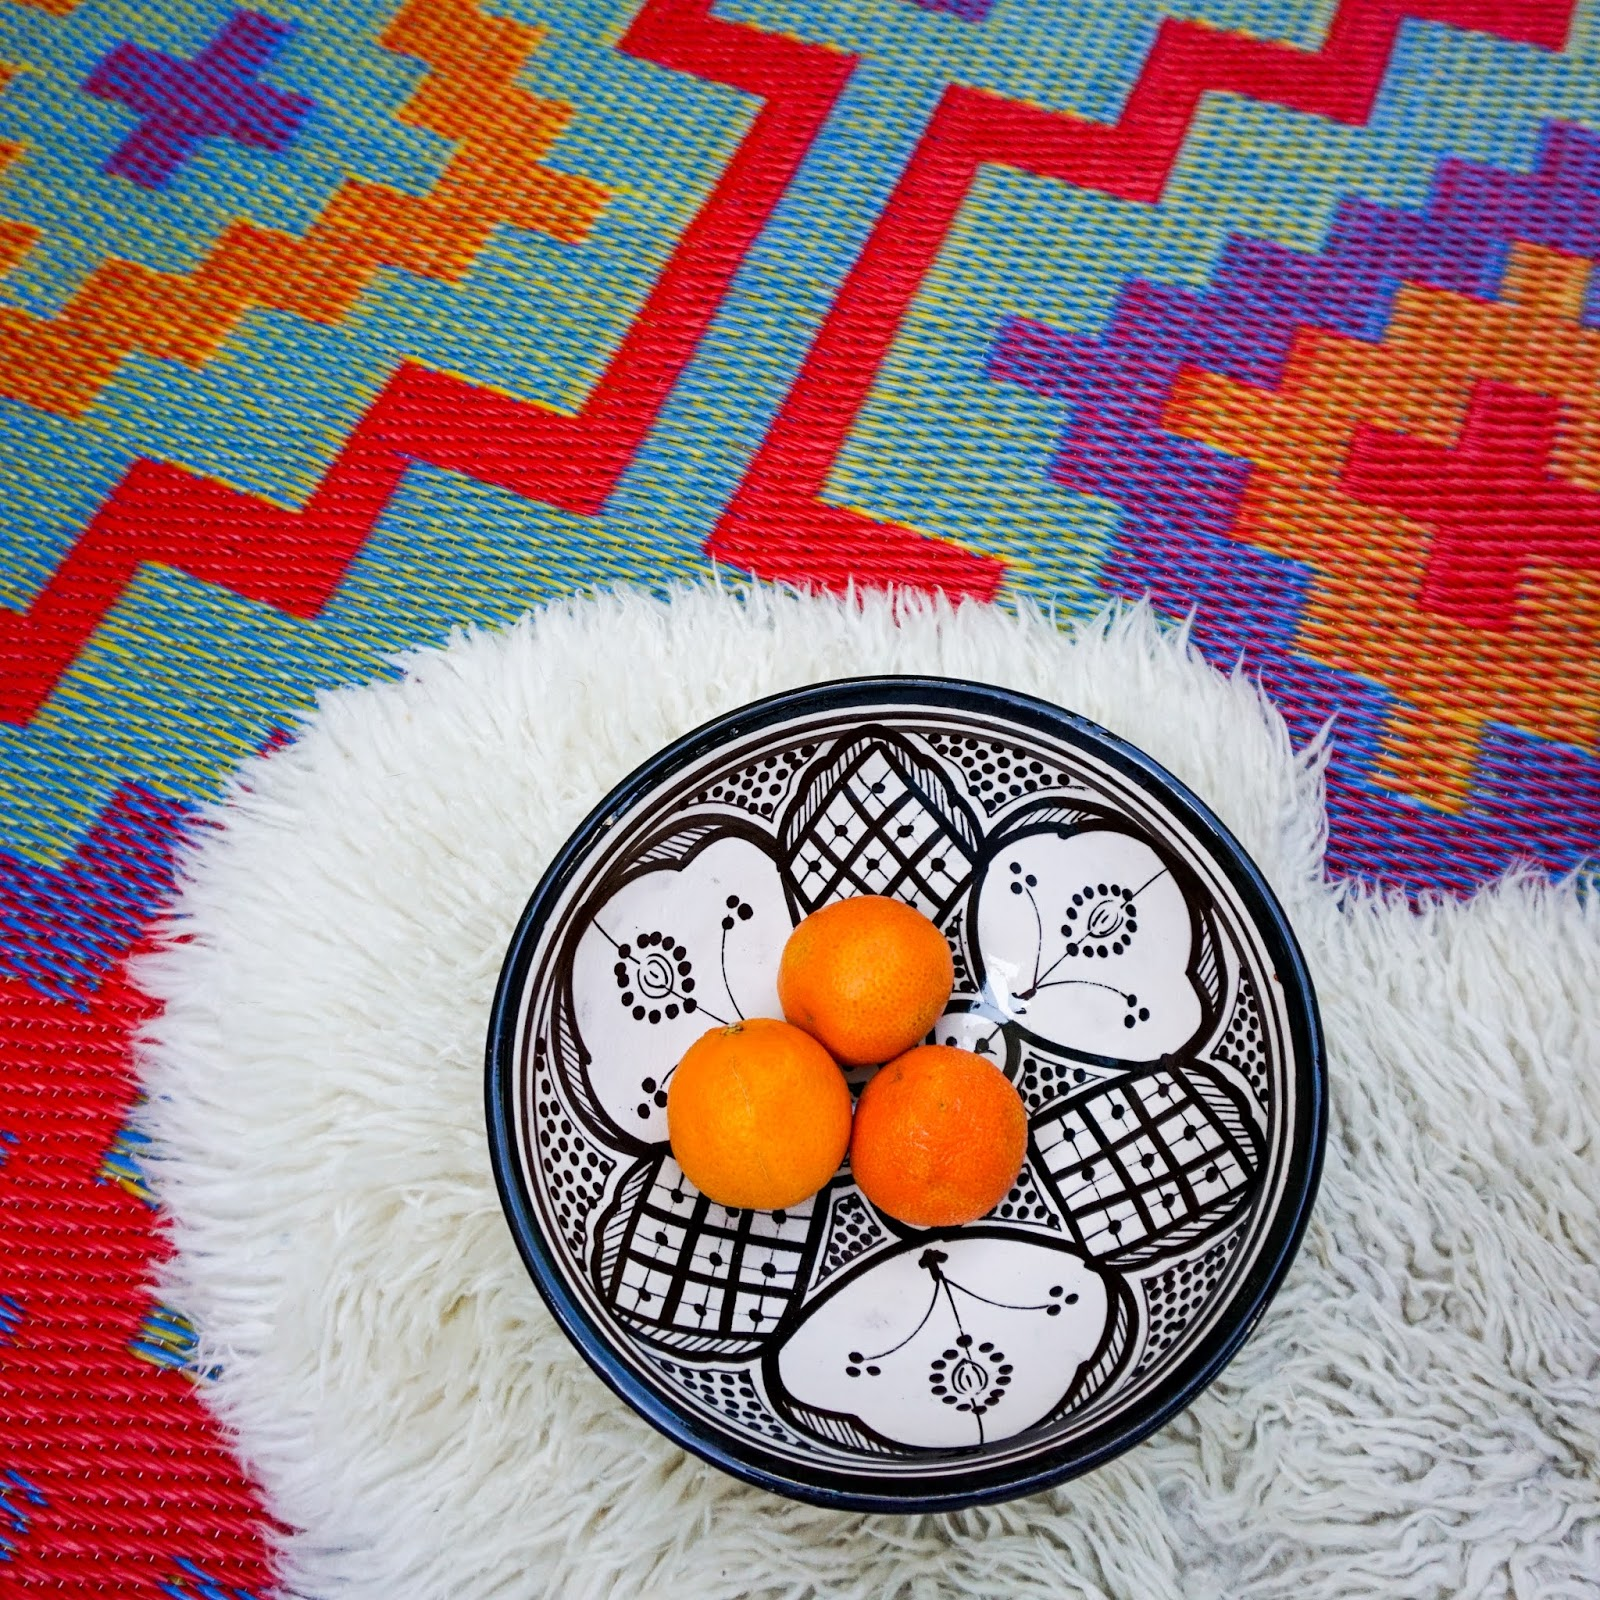 Bohemian Outdoor Space, bright bohemian patio, small outdoor space Inspiration, bohemian outdoor space inspo, colorful outdoor spaces, colorful outdoor space ideas, boho outdoor spaces, outdoor spaces hammocks, small  outdoor space with hammock, hammock outdoor spaces, colorful patio ideas, boho backyard ideas, colorful bohemian outdoor spaces, sustainable outdoor rugs, recycled plastic outdoor rugs, Wayfair outdoor furniture , sustainable outdoor furniture